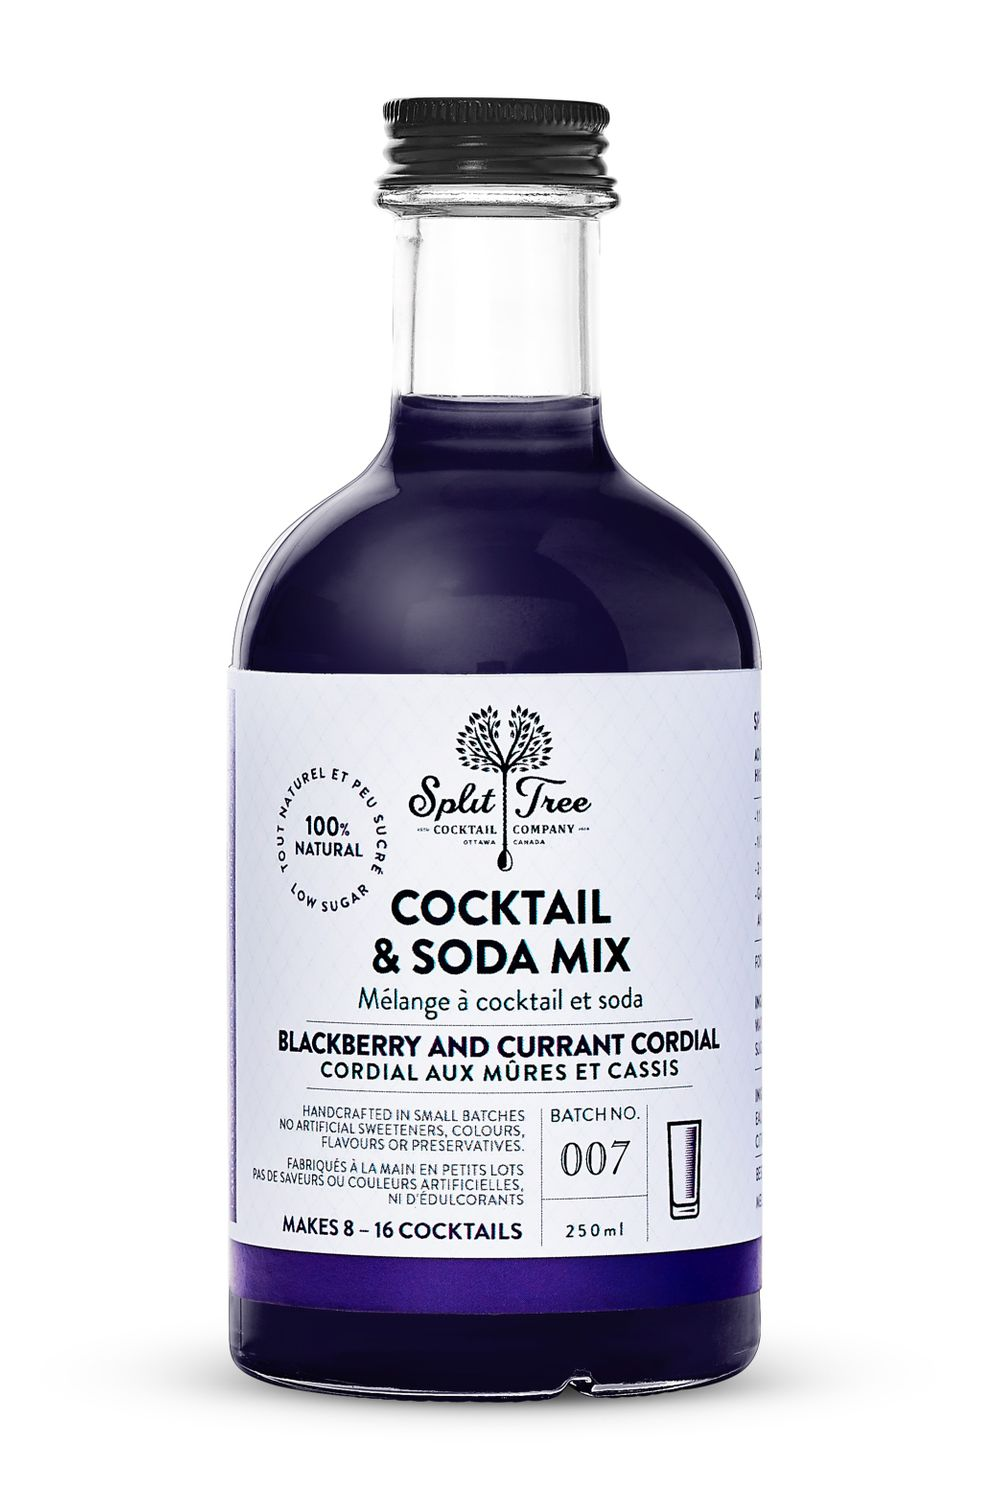 Blackberry & Currant Cordial